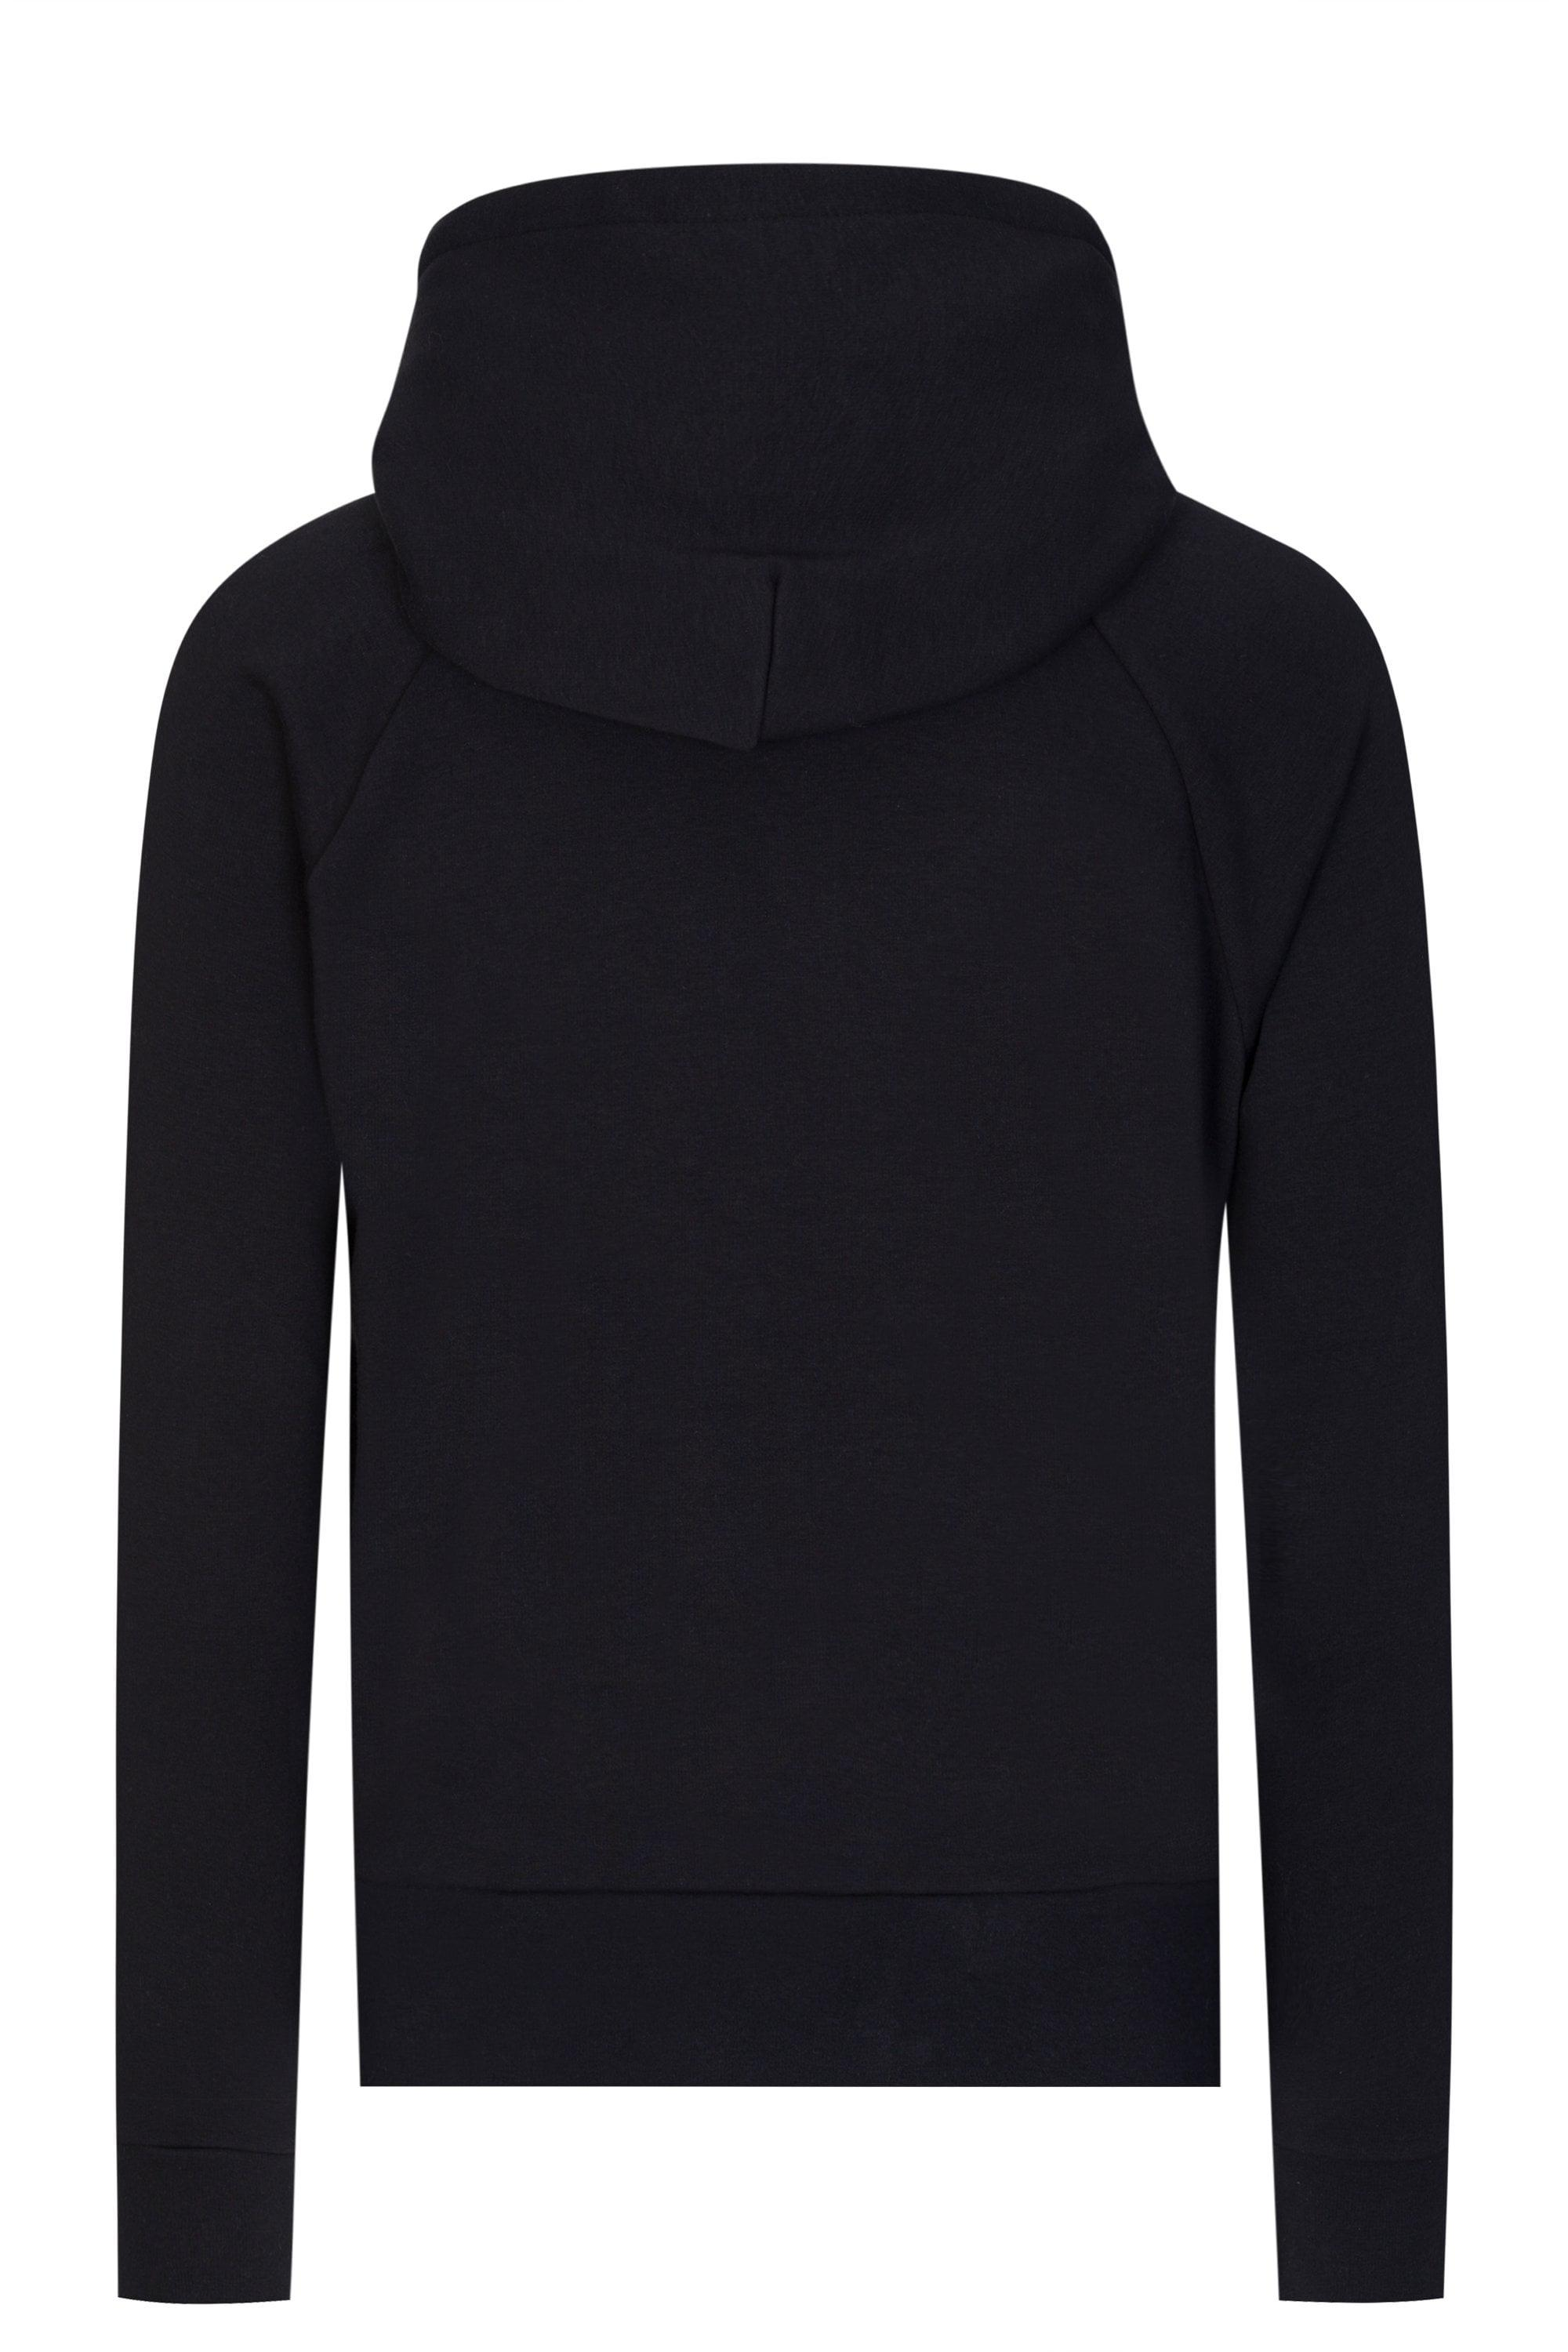 ad389c2e3539 Moncler Grenoble Oversized Logo Hooded Sweatshirt in Black for Men ...